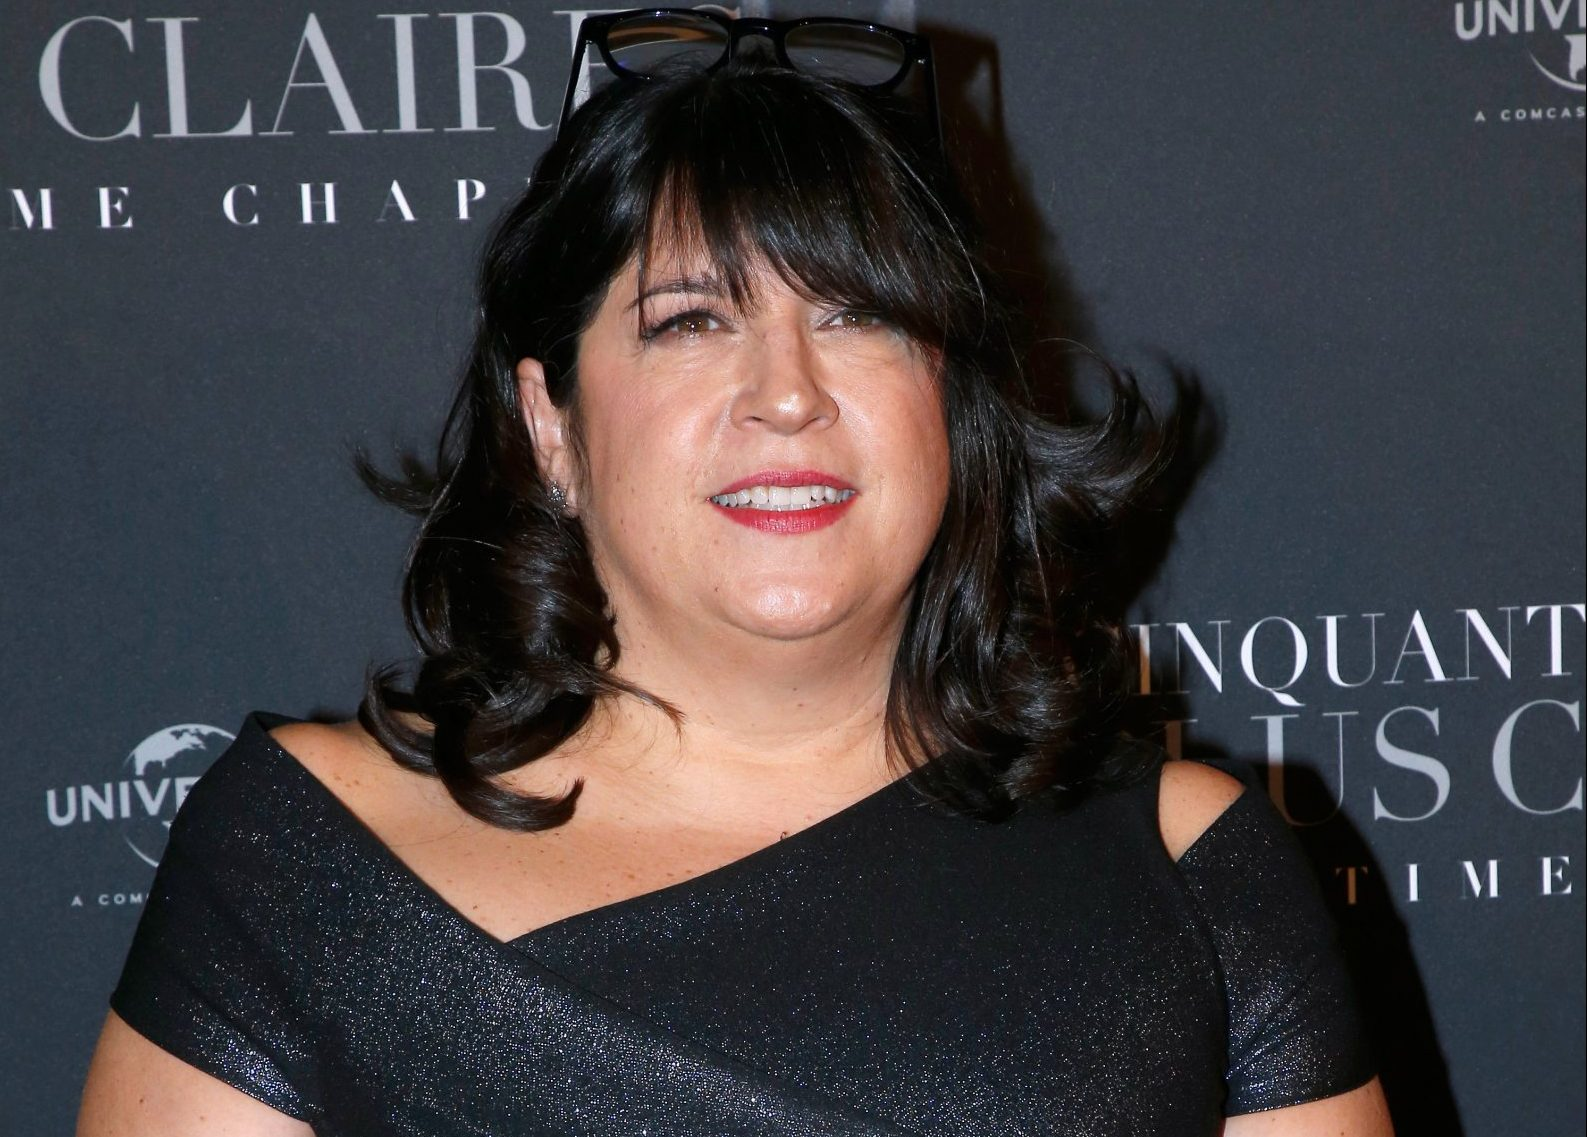 """PARIS, FRANCE - FEBRUARY 06: Writer E.L. James attends the """"Fifty Shades Freed - 50 Nuances Plus Clair"""" Paris Premiere at Salle Pleyel on February 6, 2018 in Paris, France. (Photo by Bertrand Rindoff Petroff/Getty Images)"""